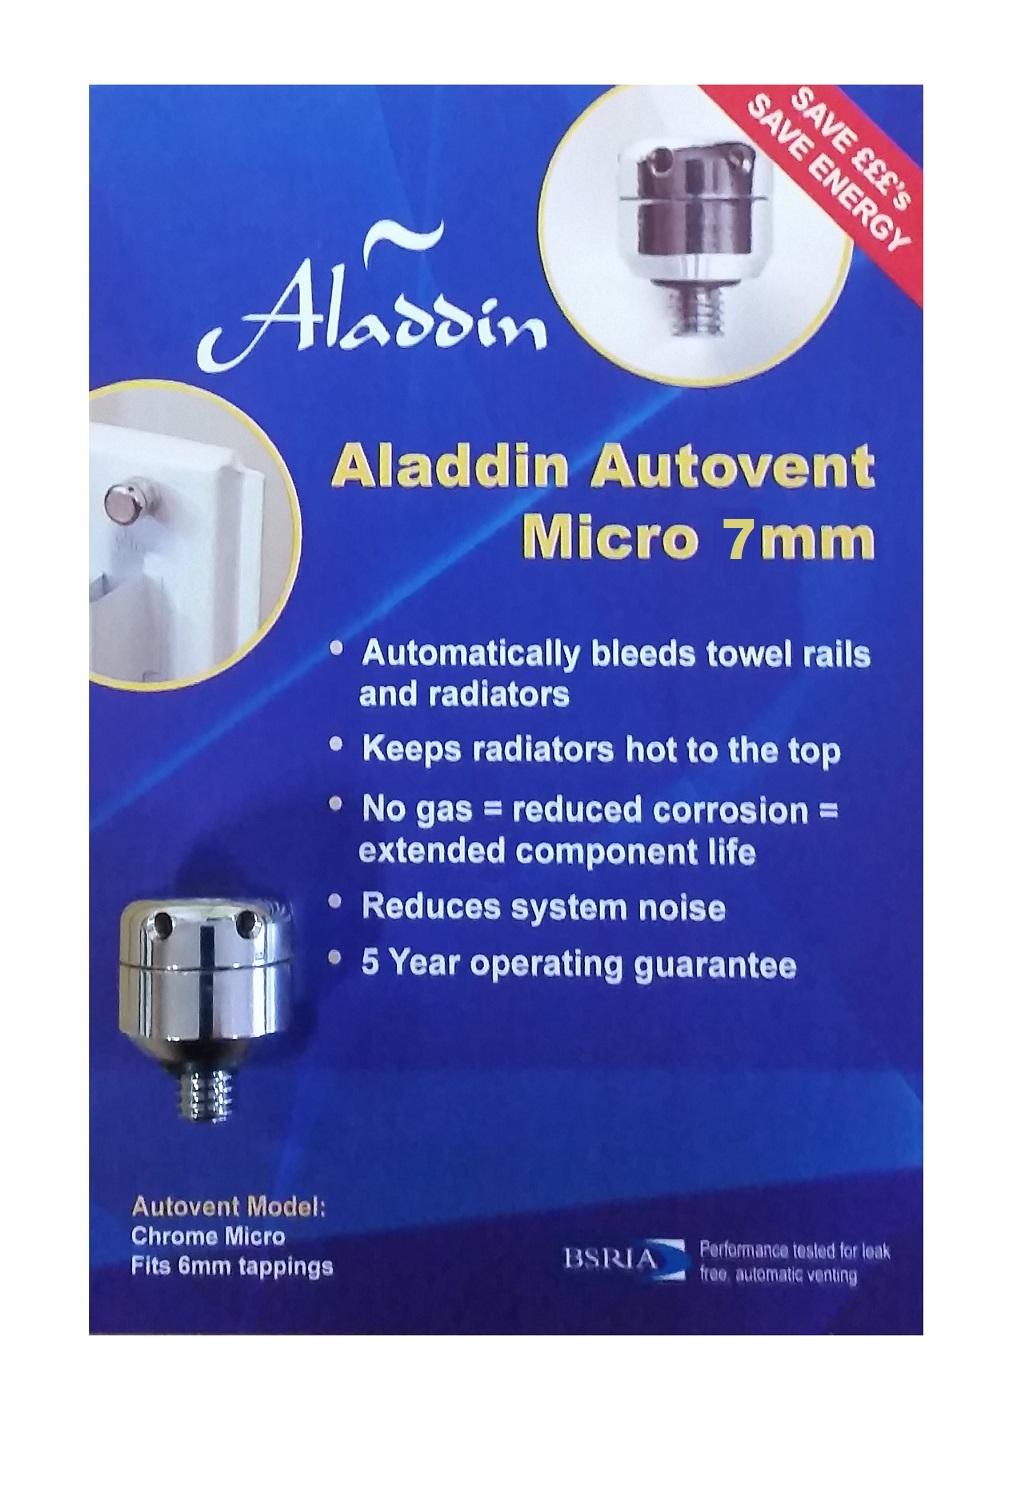 Aladdin Autovent Micro 7mm Radiator Bleeding Valve